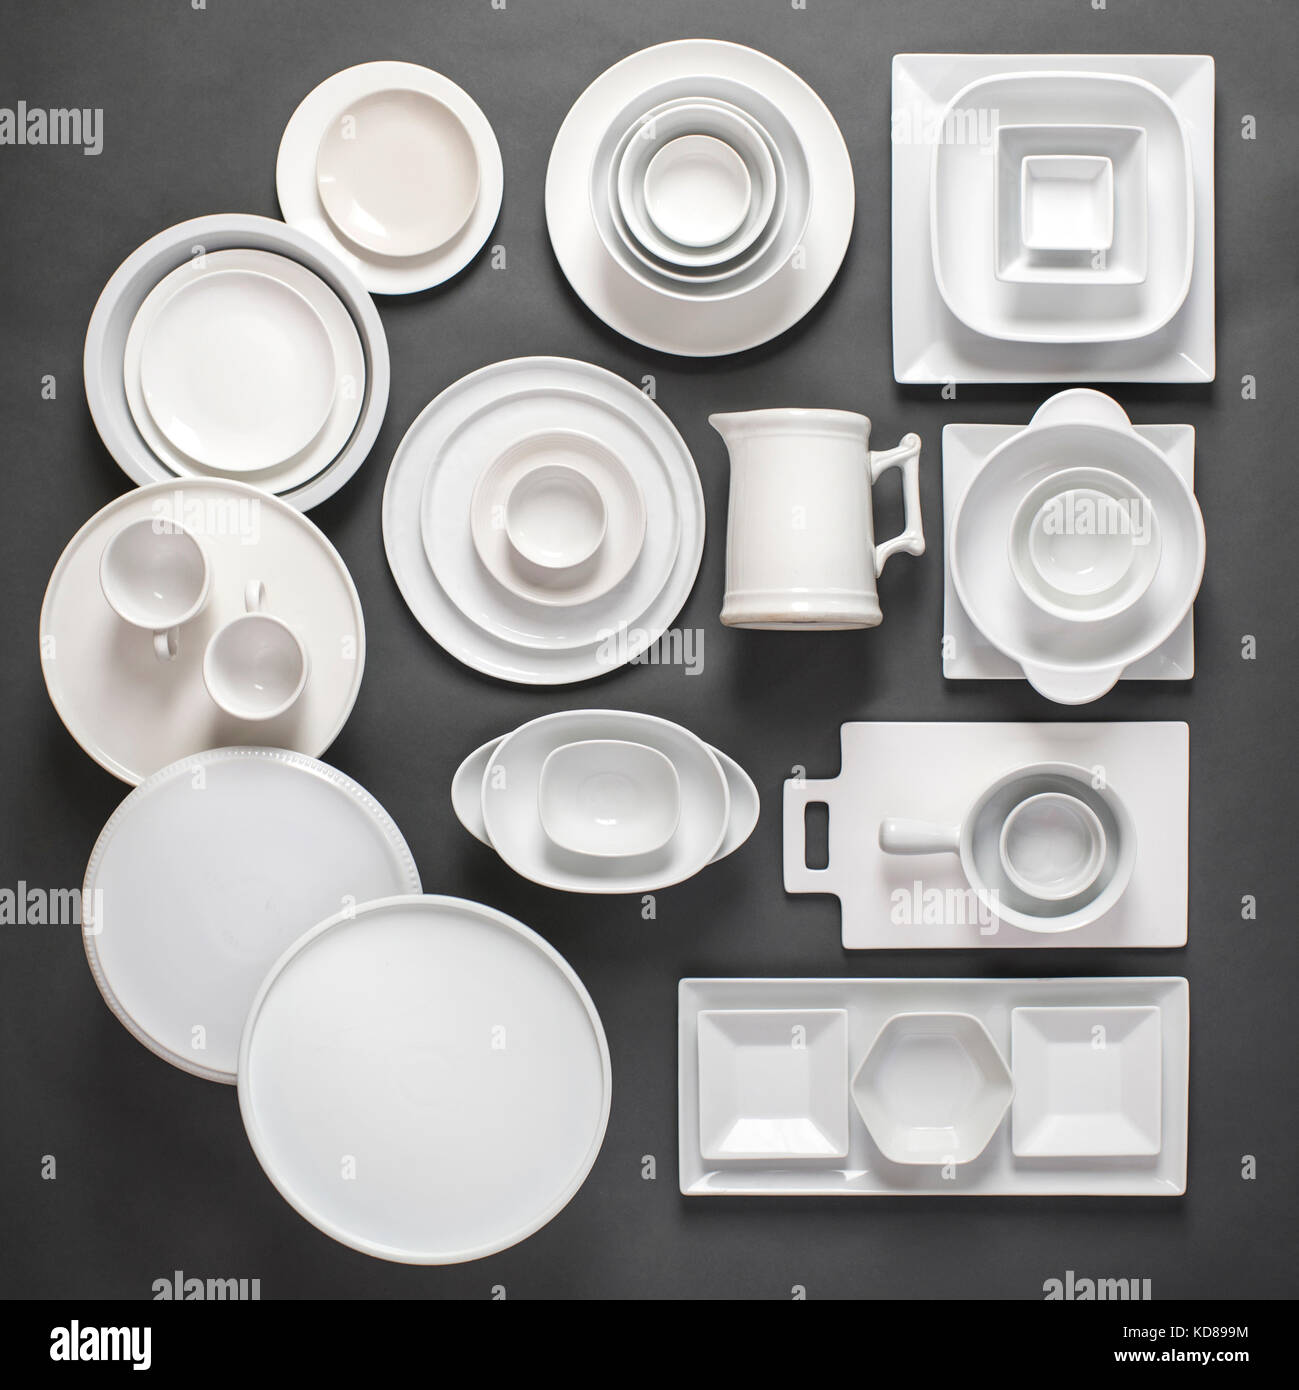 Assorted variety of white porcelain dinnerware laid out in a grpahic, organized way on a gray background. - Stock Image